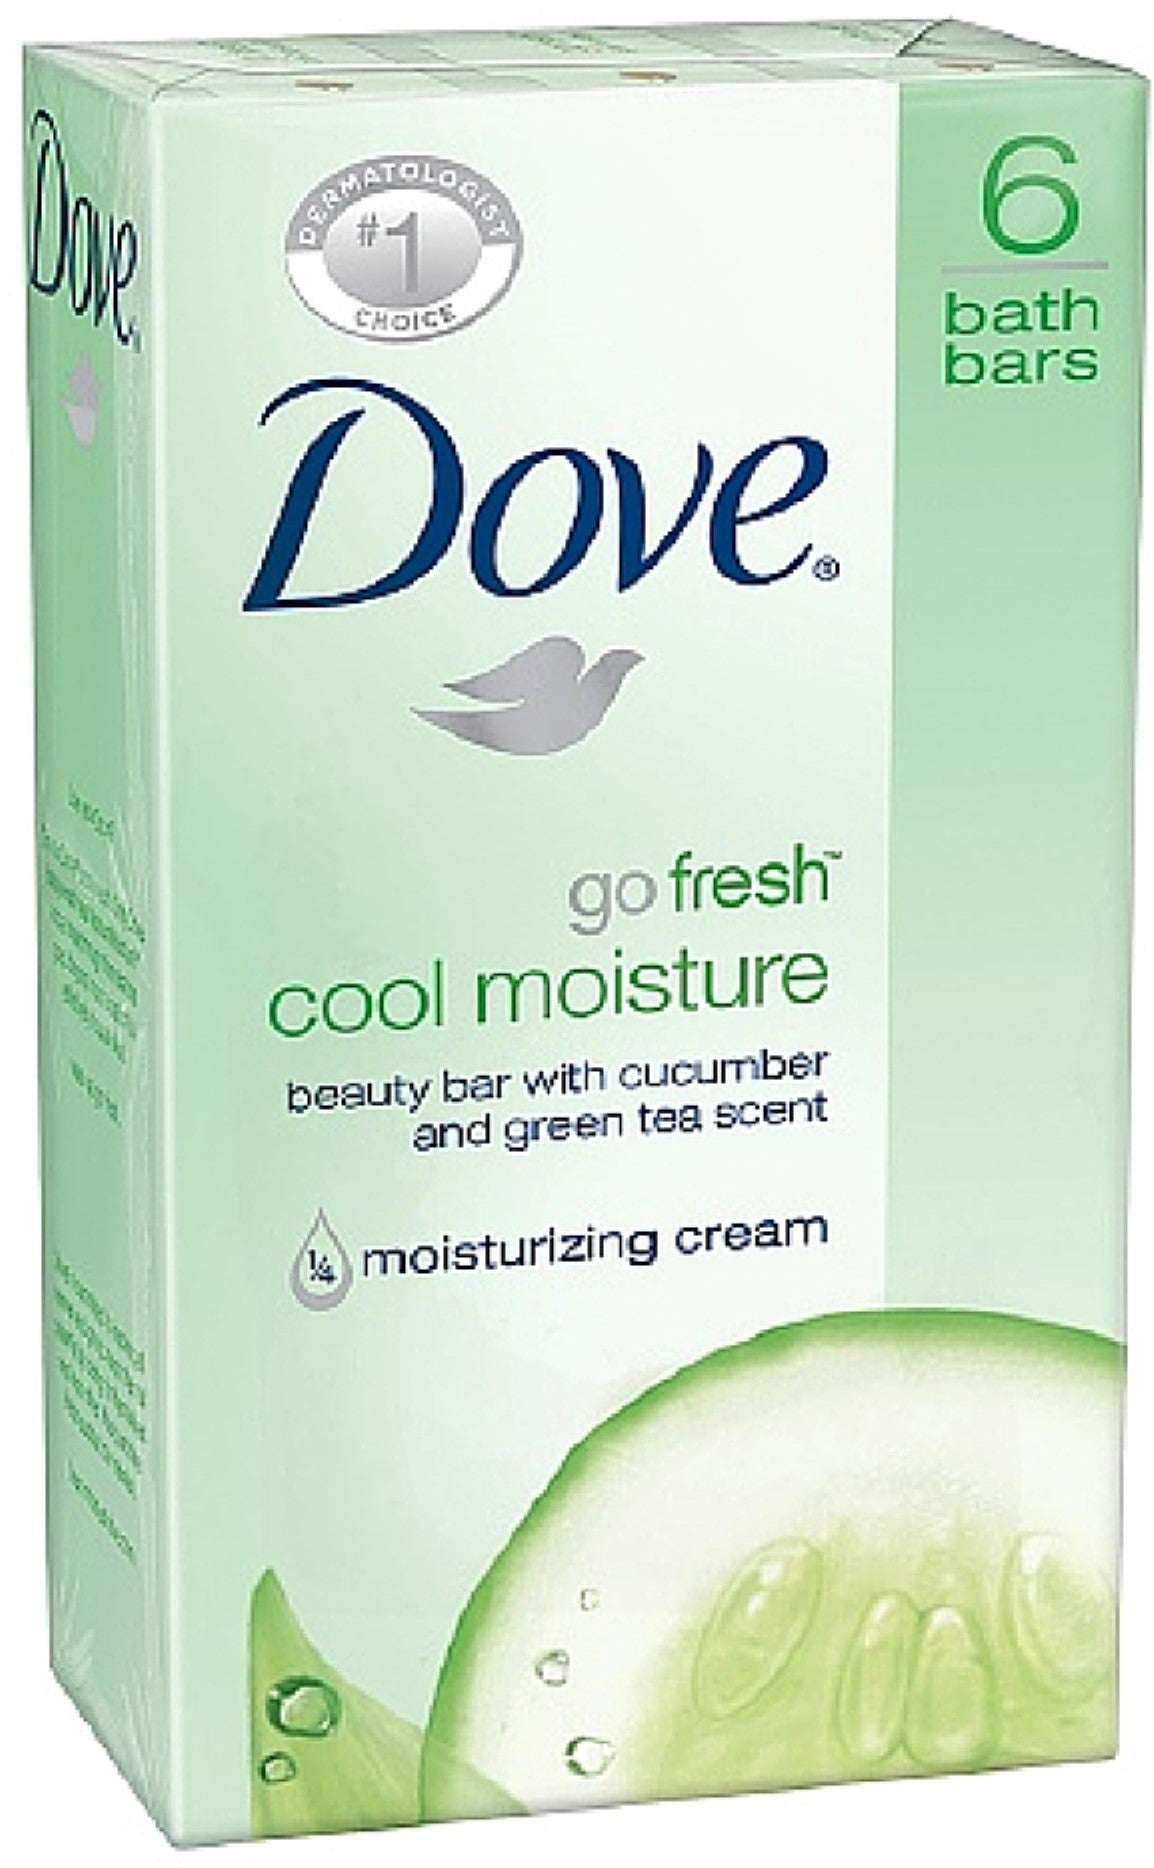 Dove Go Fresh Cool Moisture Beauty Bars, 4 oz bars, 2 ea (Pack of 6) Daily Defense Complex/Recovery Night Moisture Serum by Lifeline Skin Care, 2-Pack, 1 oz. each